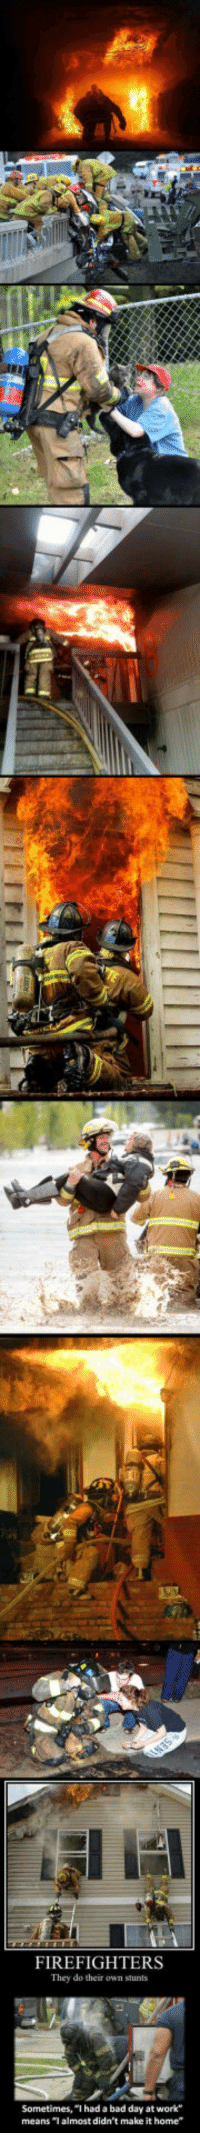 """Bad, Bad Day, and Respect: FIREFIGHTERS  They do their own stunts  Sometimes, """"I had a bad day at work  meΔη$ """"l almost didn't make it home"""" <p>Respect To These Heroes.</p>"""